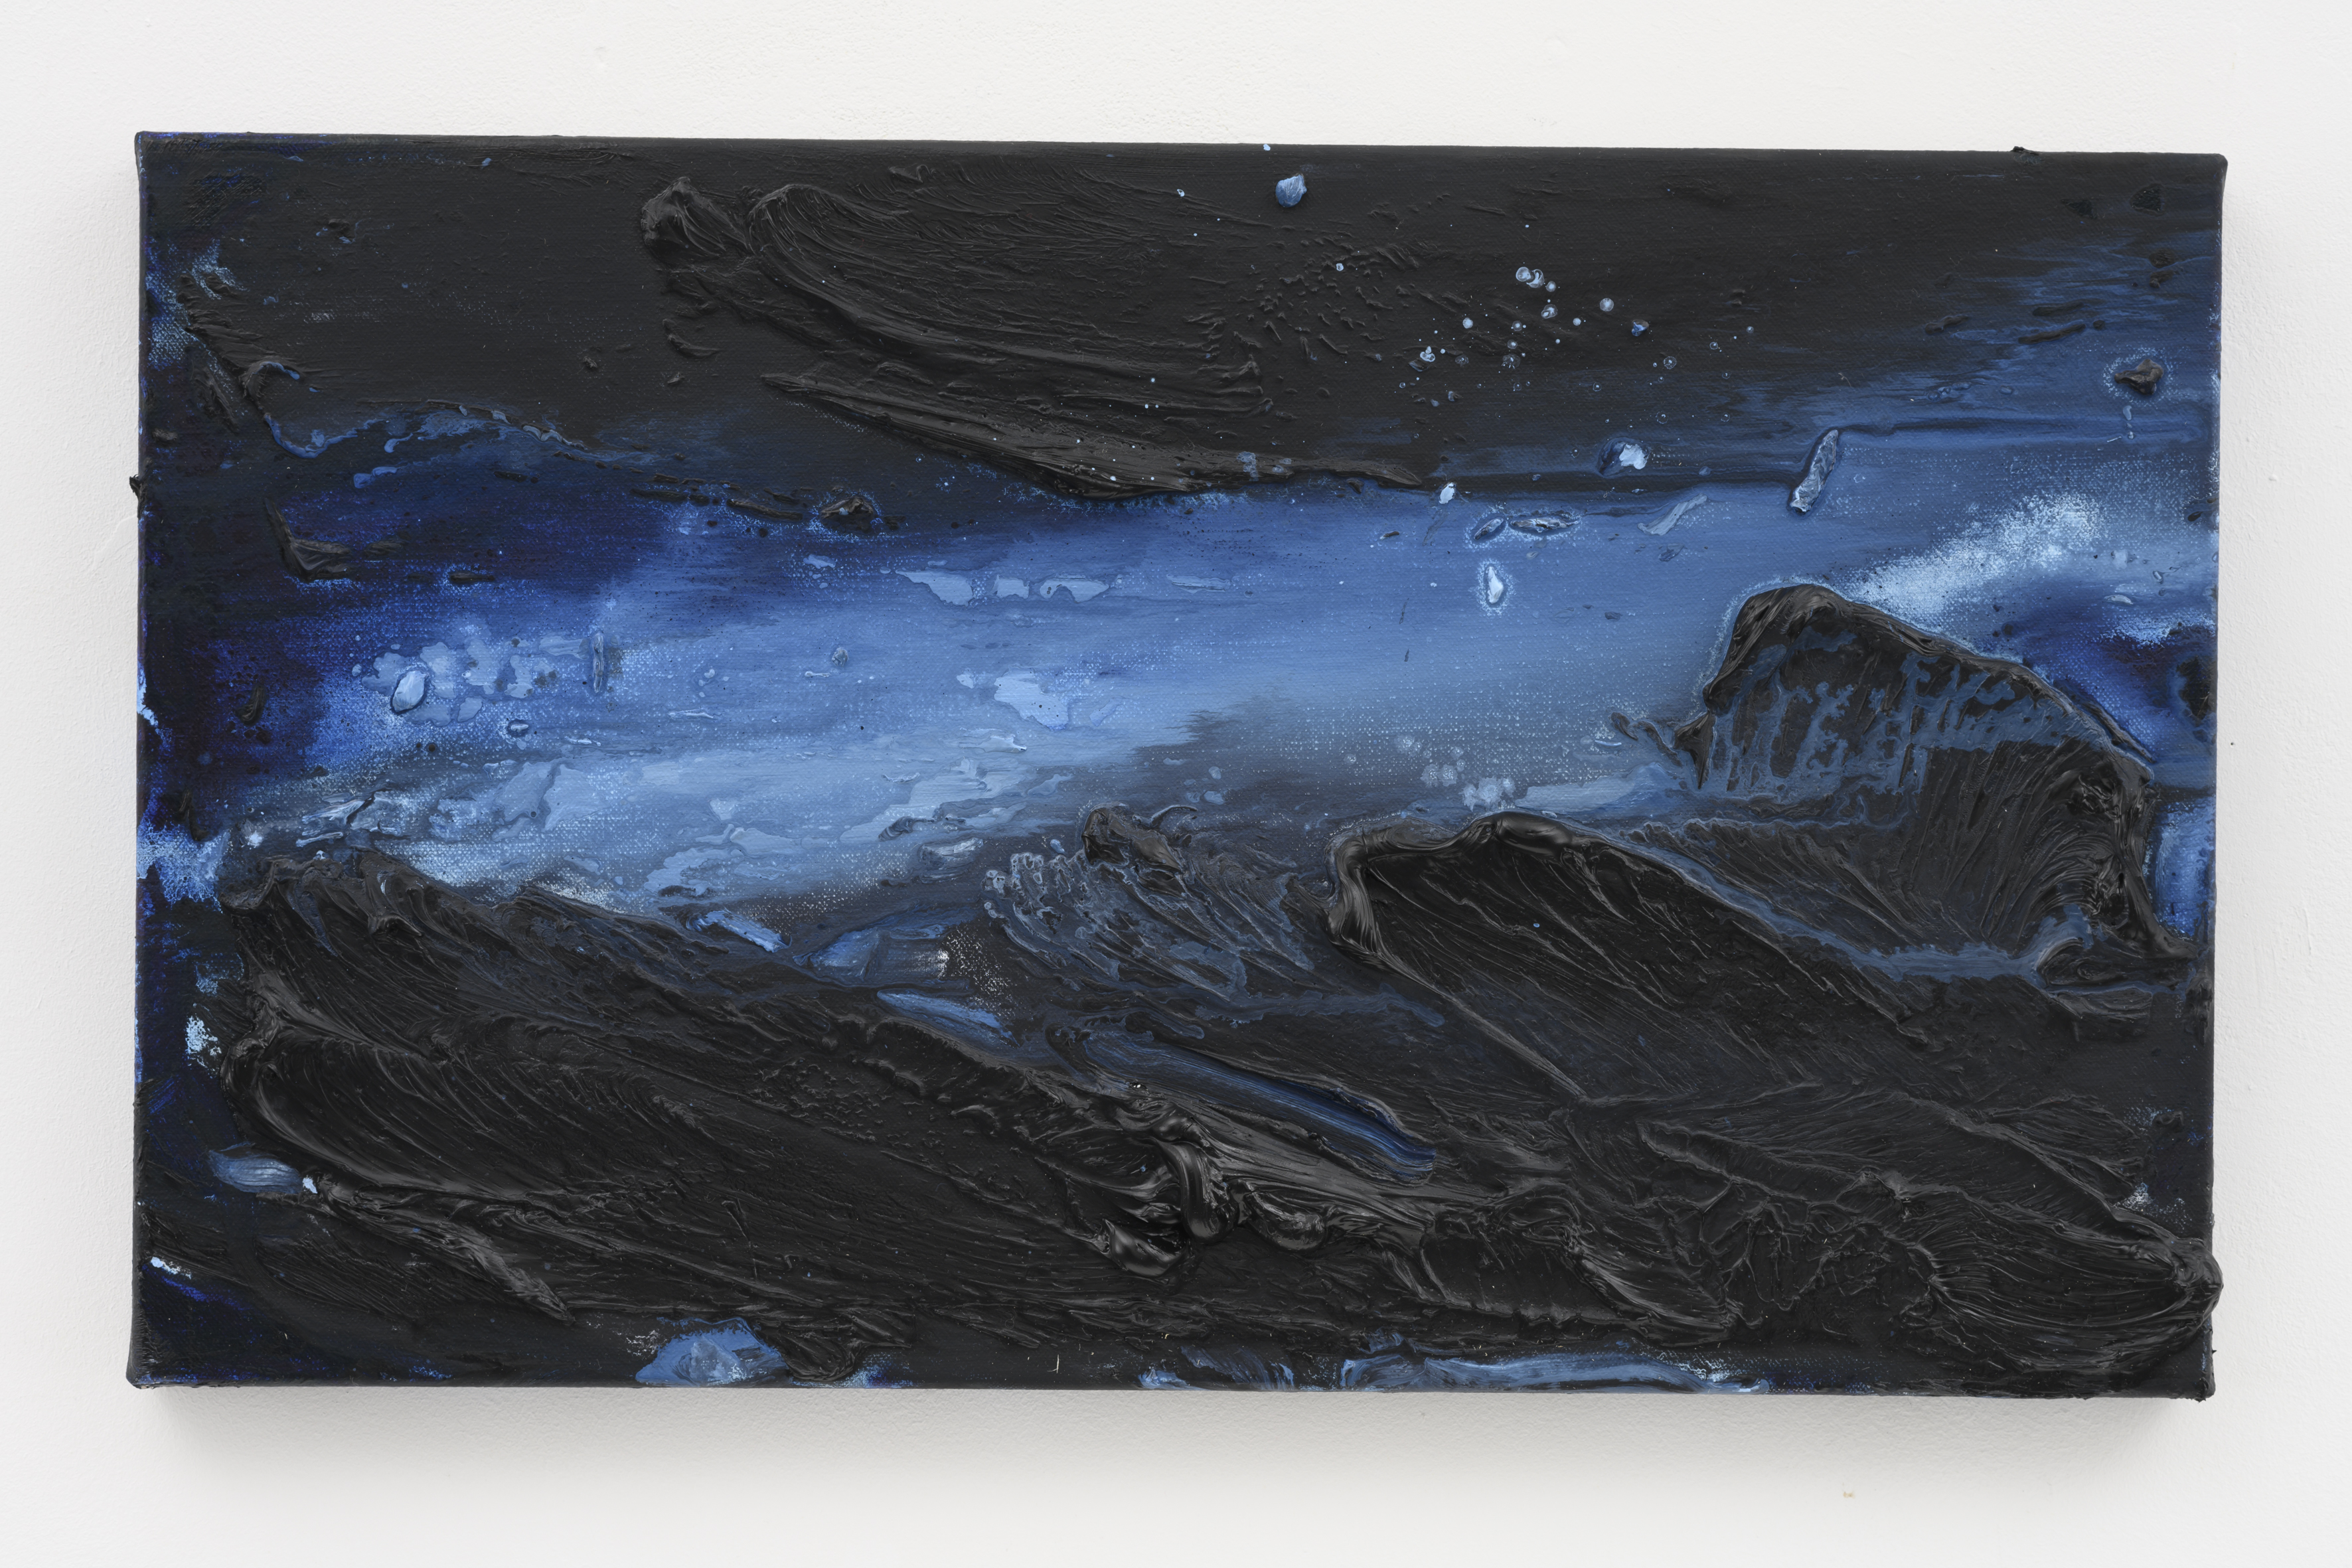 """""""My Norway, The Blues of Norway IV"""", 30 x 50 cm. oil on linen 2019 (Norway)"""